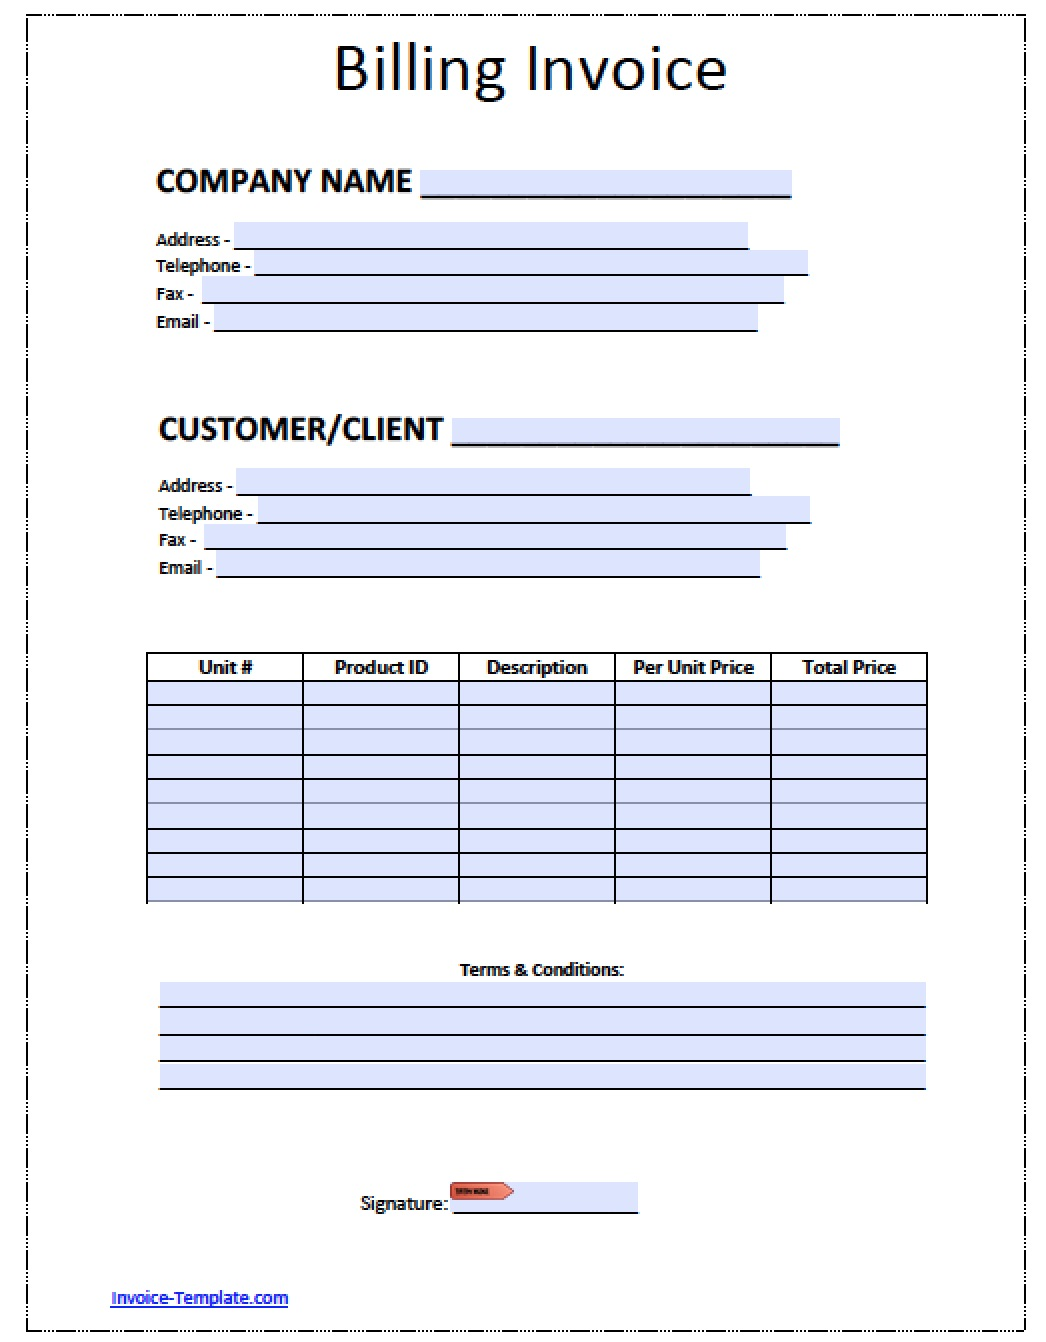 Amatospizzaus  Fascinating Free Billing Invoice Template  Excel  Pdf  Word Doc With Exciting Billinginvoicetemplatewordpdf With Breathtaking Invoice Template Google Doc Also Best Invoice App In Addition Examples Of Invoices And Einvoicing As Well As Invoice Define Additionally Billing Invoice From Invoicetemplatecom With Amatospizzaus  Exciting Free Billing Invoice Template  Excel  Pdf  Word Doc With Breathtaking Billinginvoicetemplatewordpdf And Fascinating Invoice Template Google Doc Also Best Invoice App In Addition Examples Of Invoices From Invoicetemplatecom